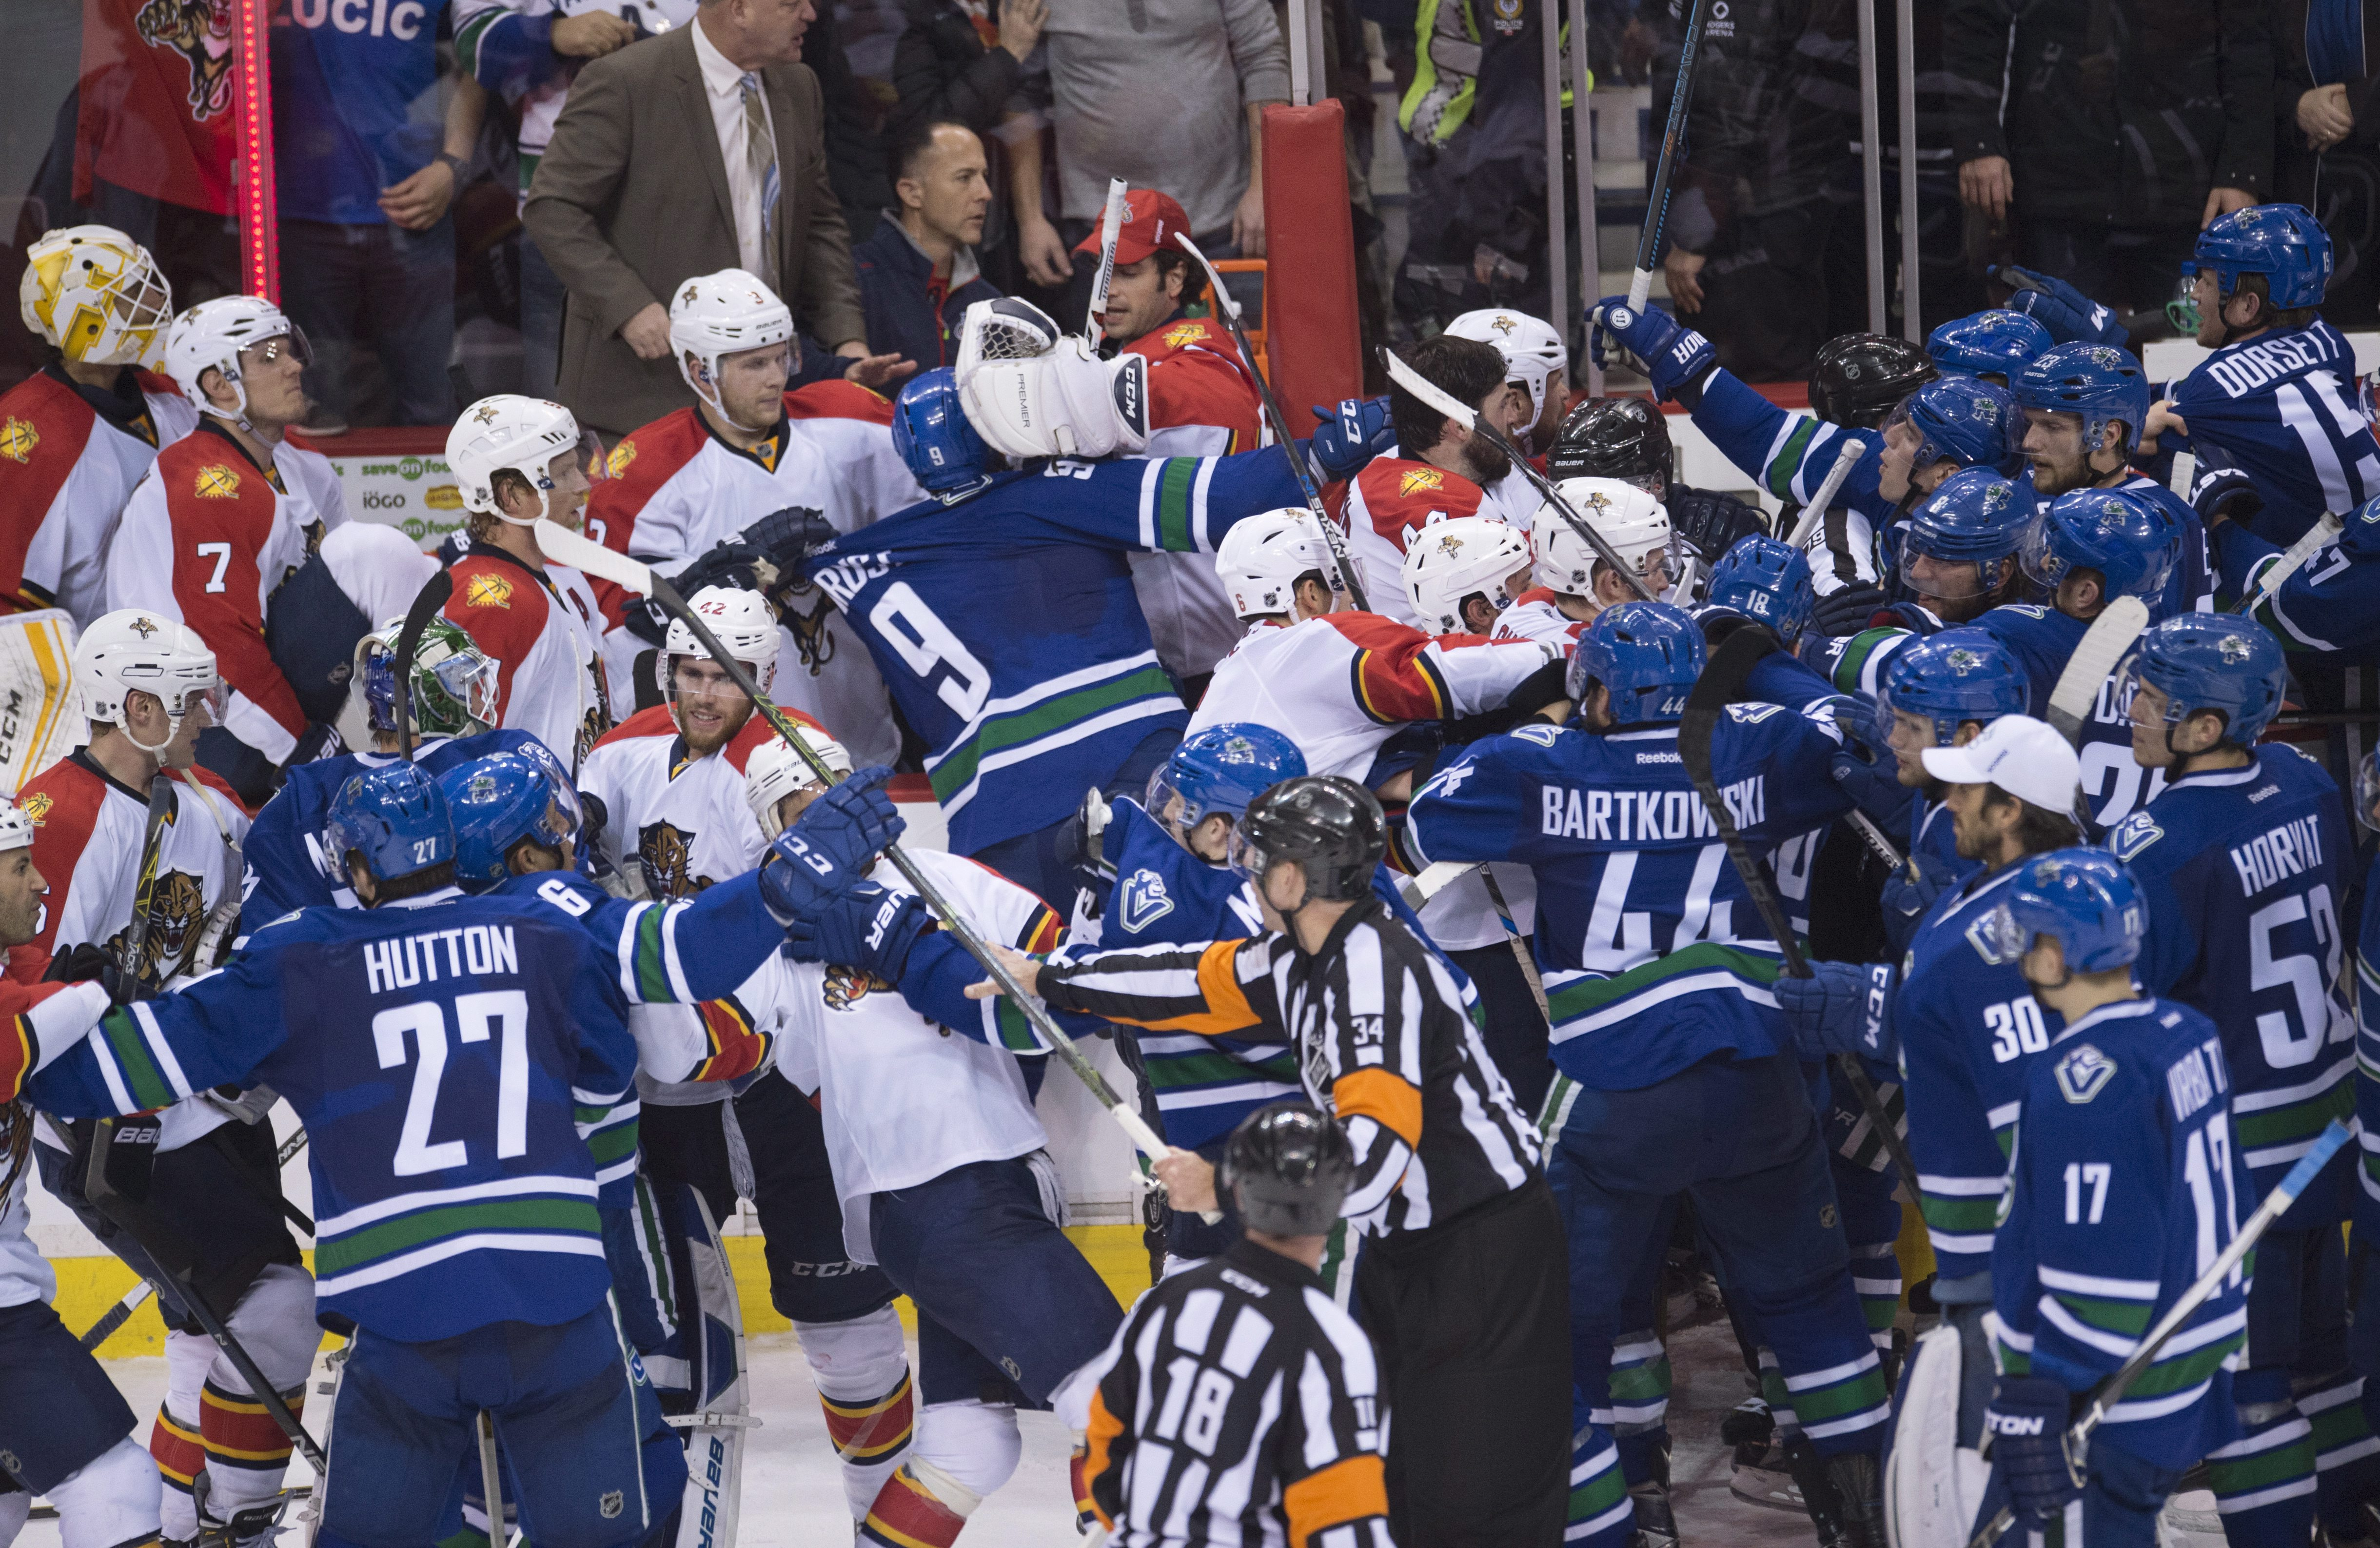 A bench clearing brawl breaks out following the Vancouver Canucks overtime win over the Florida Panthers in an NHL hockey game in Vancouver, British Columbia, Canada, Monday, Jan. 11, 2016. (Jonathan Hayward/The Canadian Press via AP)